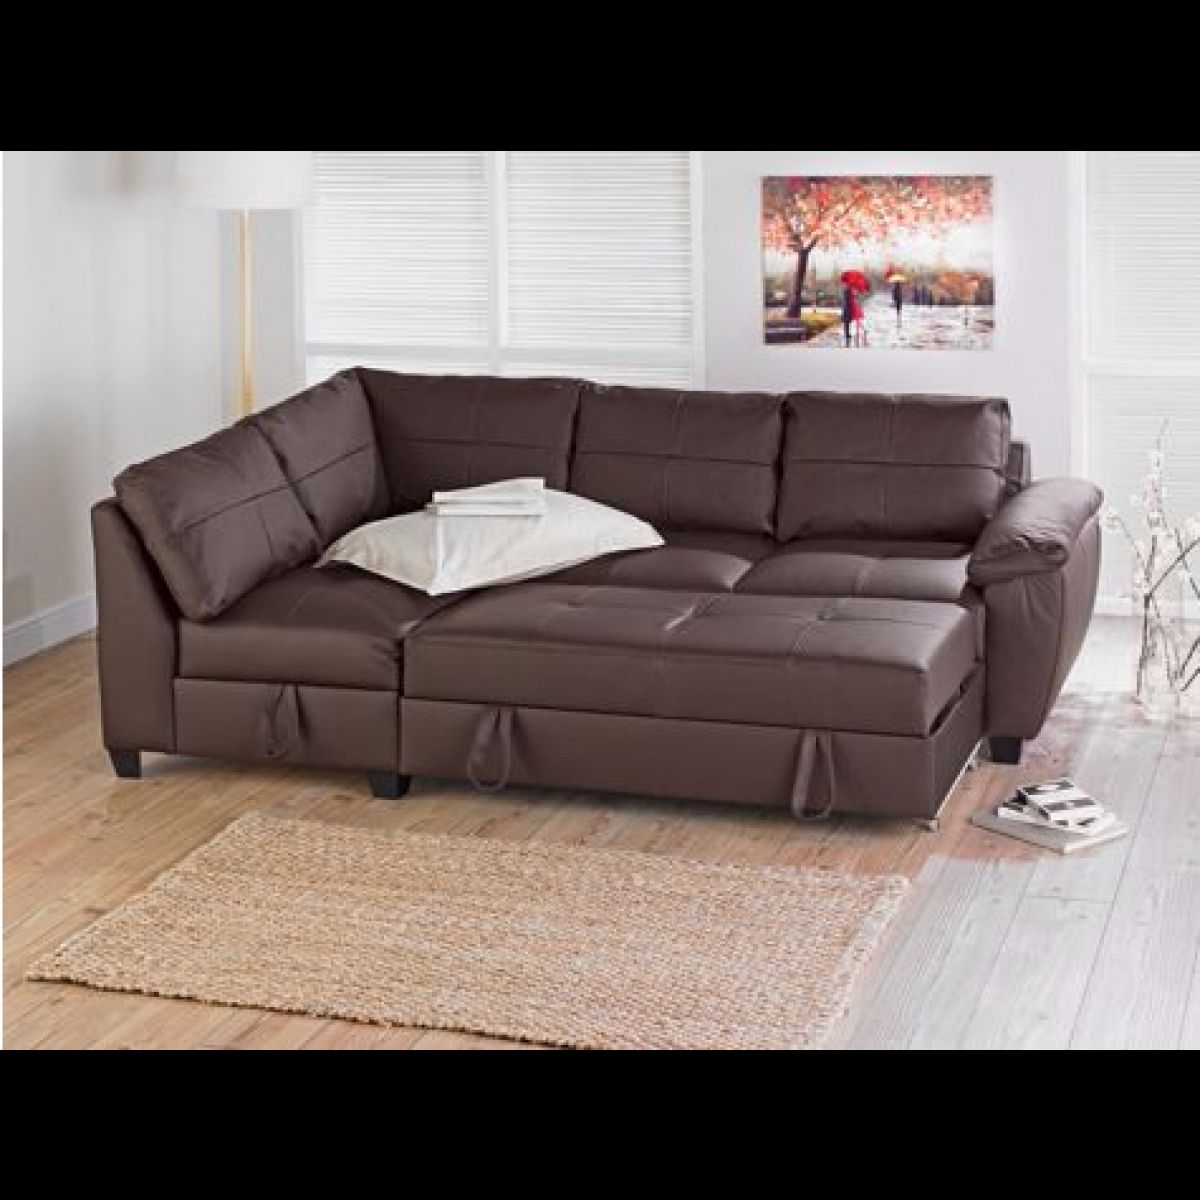 Corner Group Sofa Bed With Storage